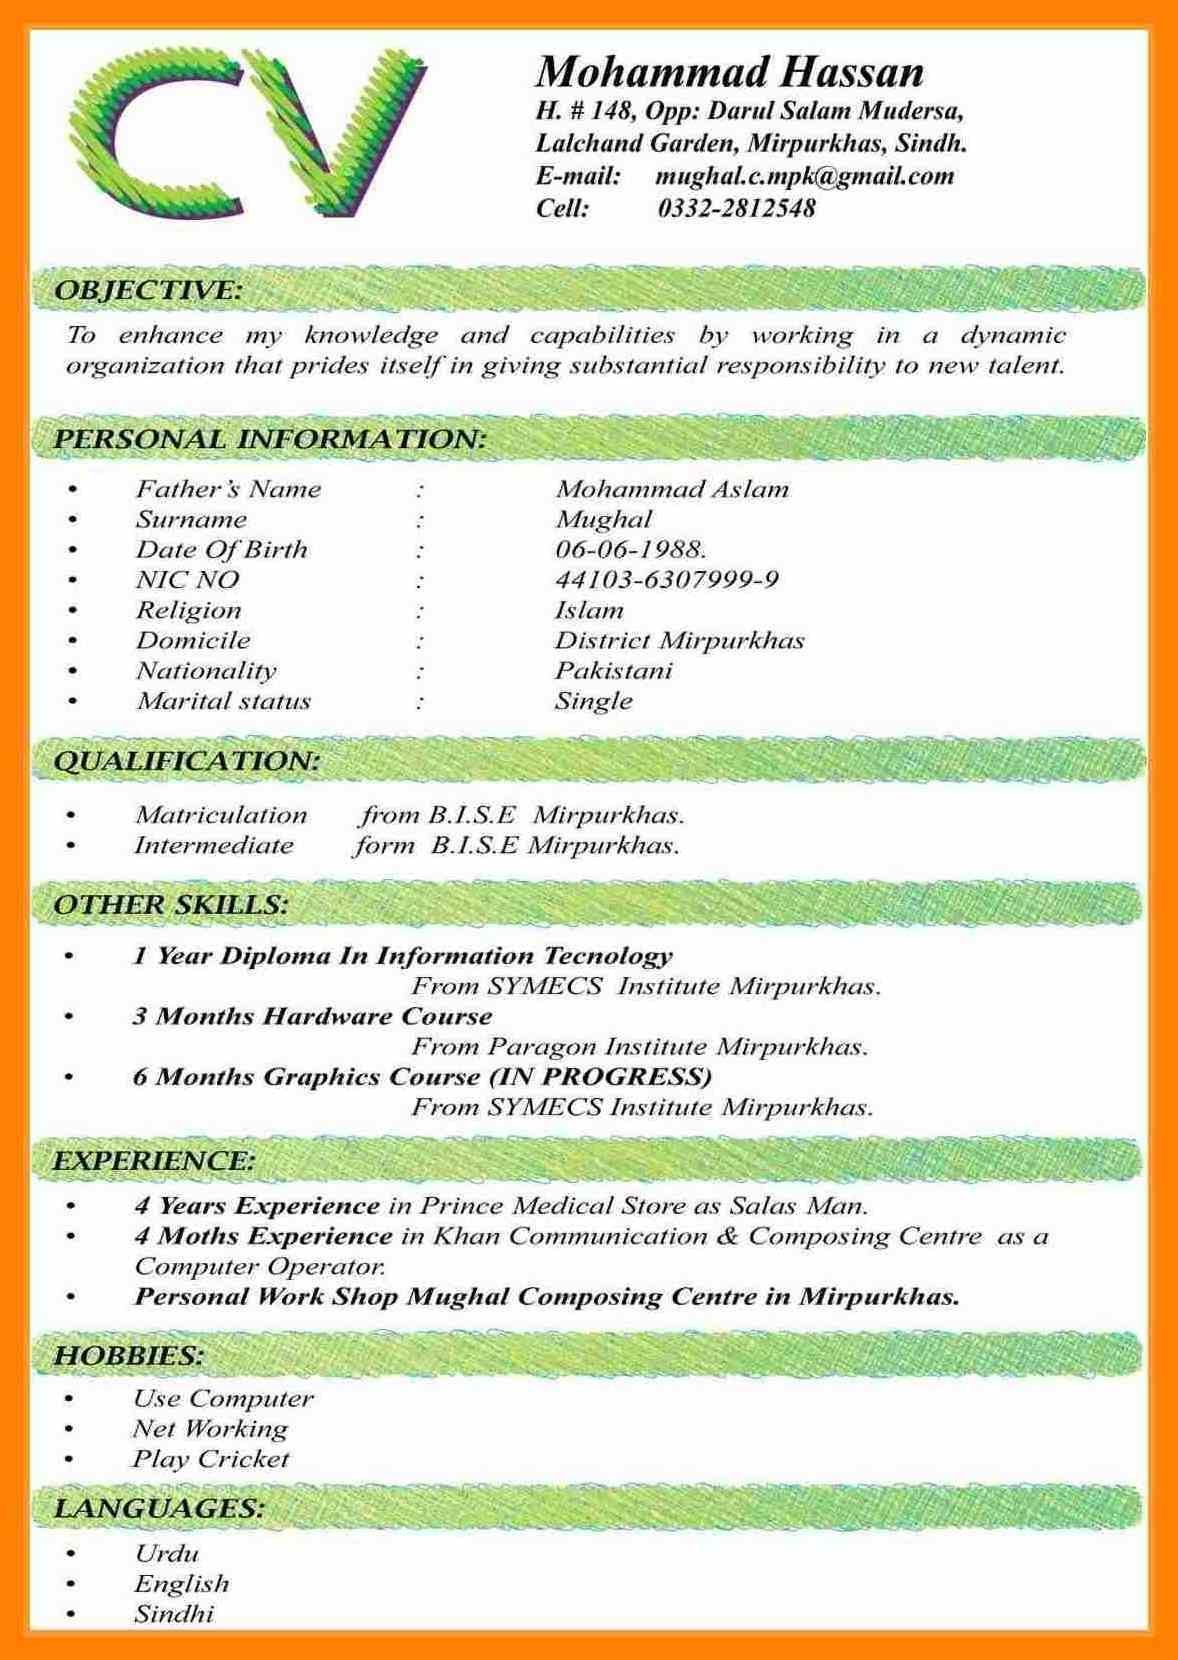 8 Undergraduate Student Cv Sample New Tech Timeline Cv Format Resume Format For Freshers Cv Format For Job